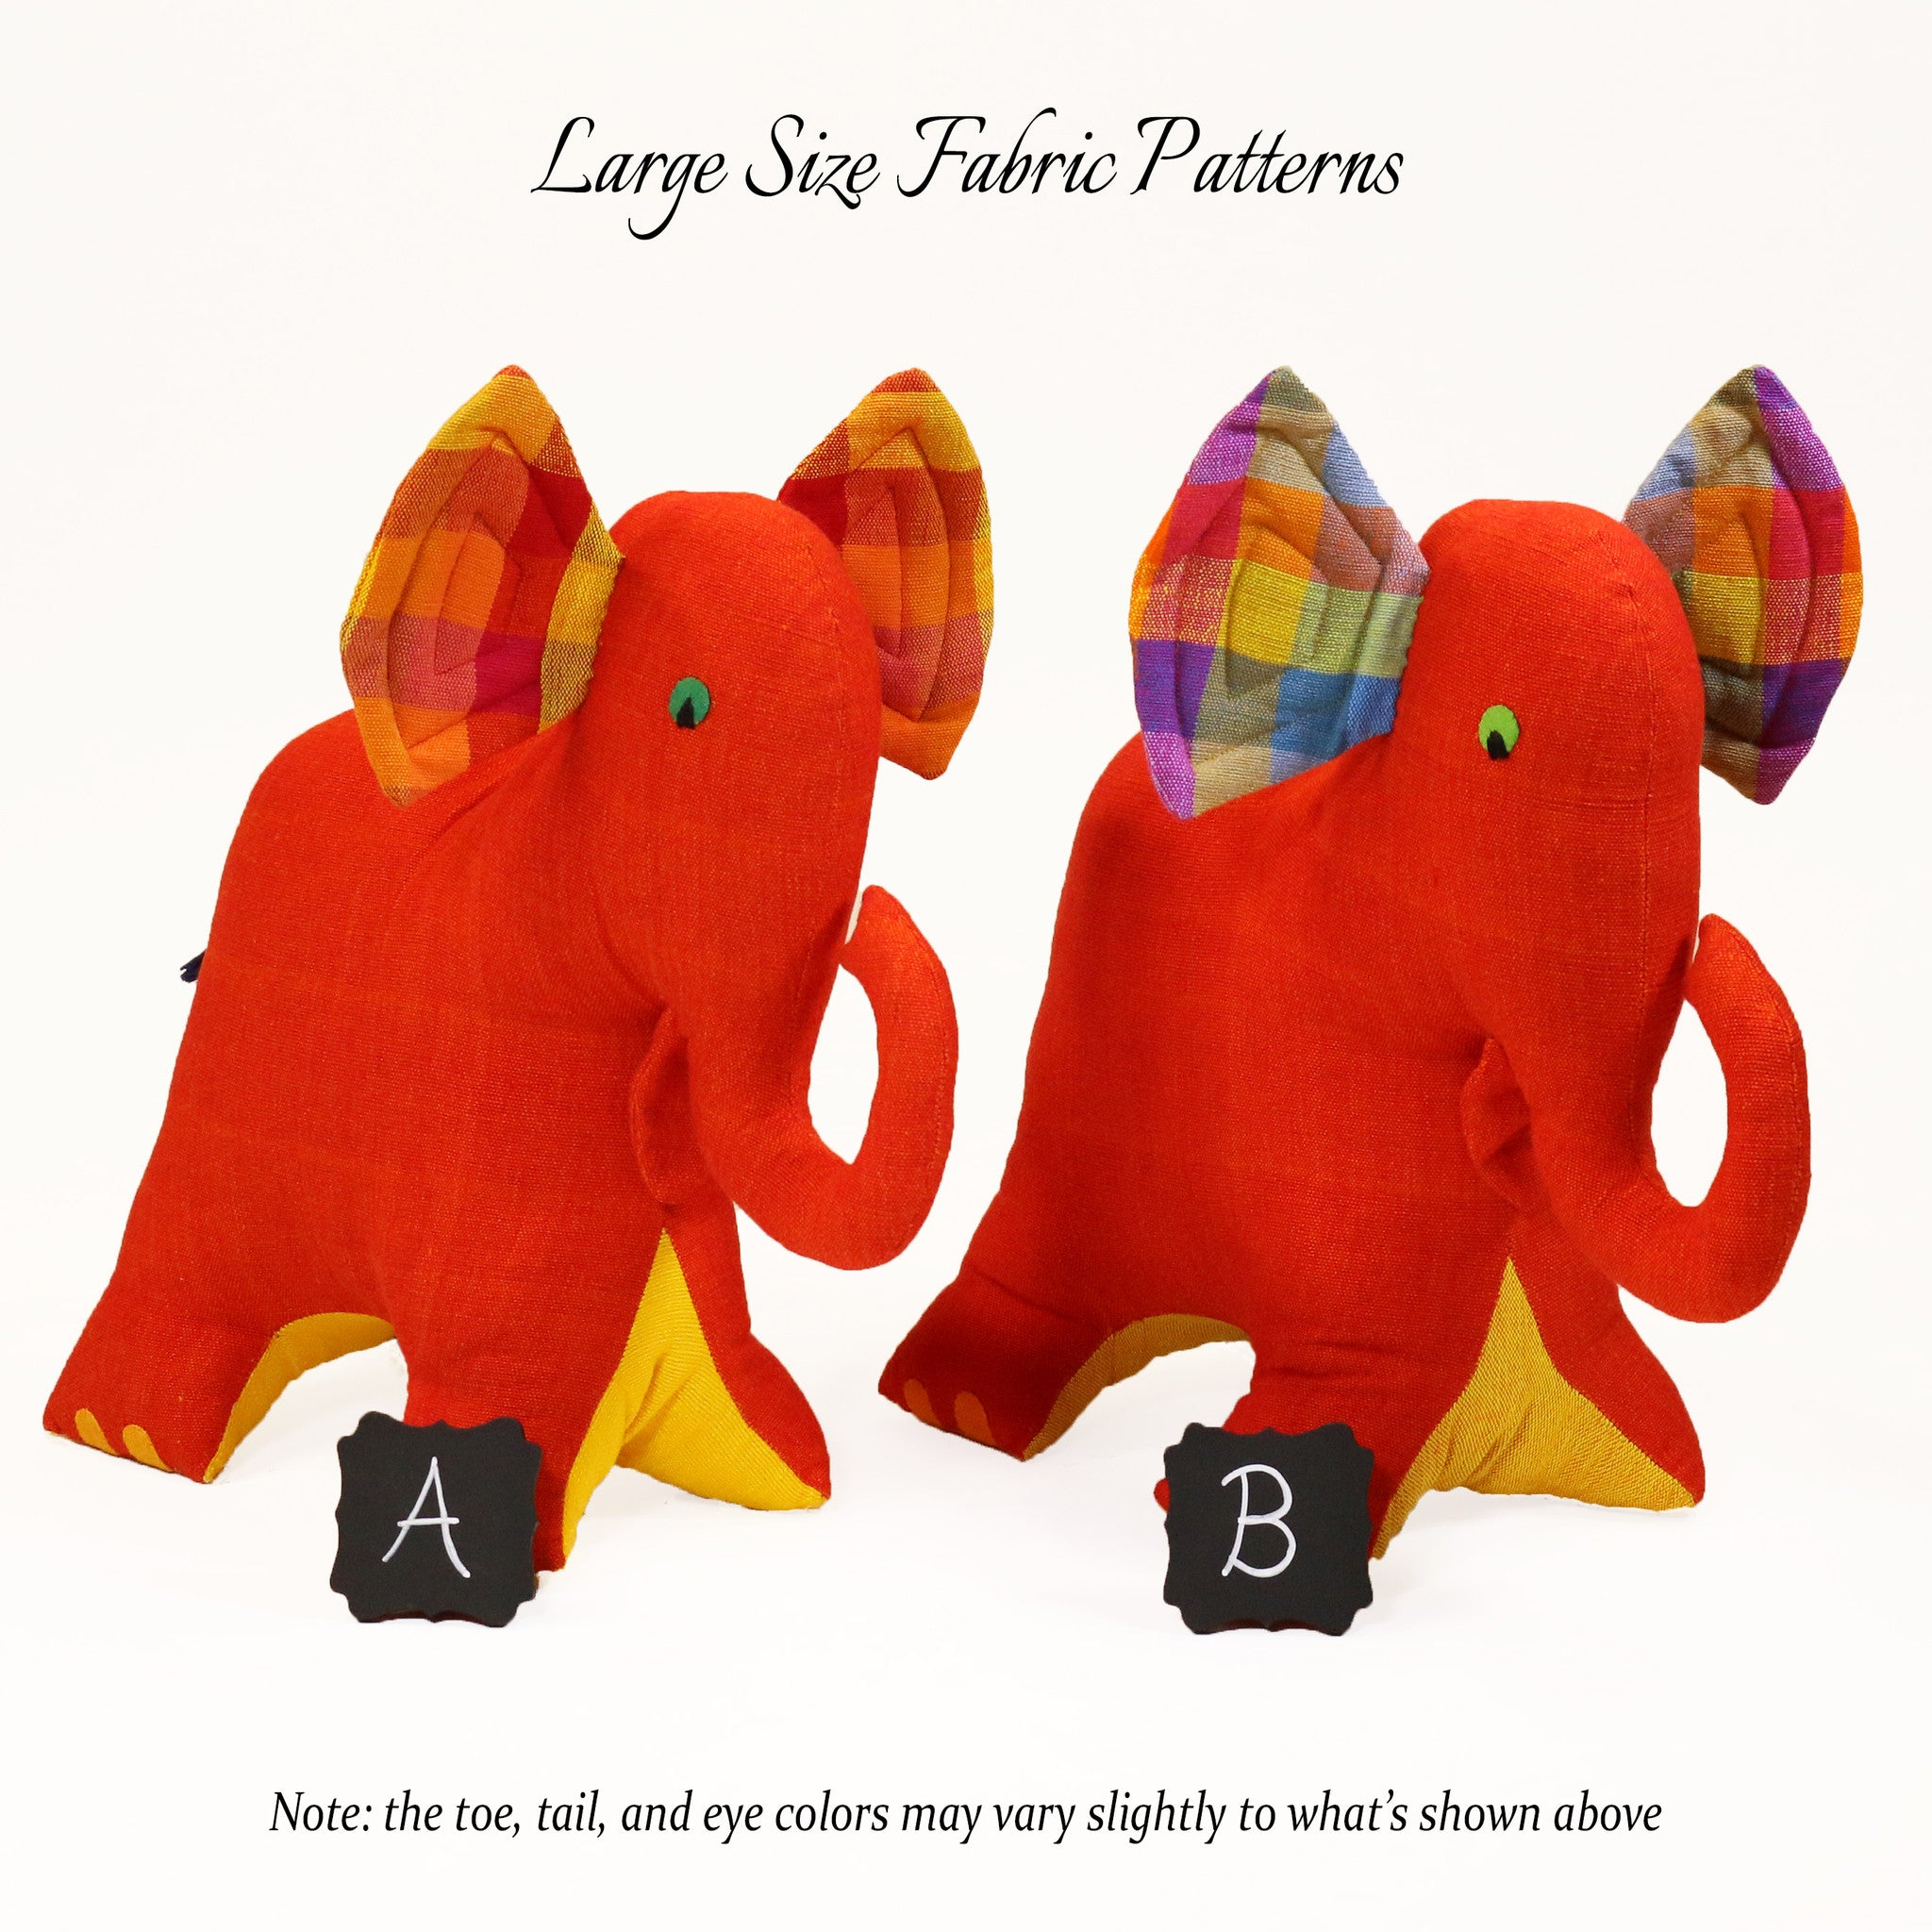 Eva, the Elephant – all large size fabric patterns shown